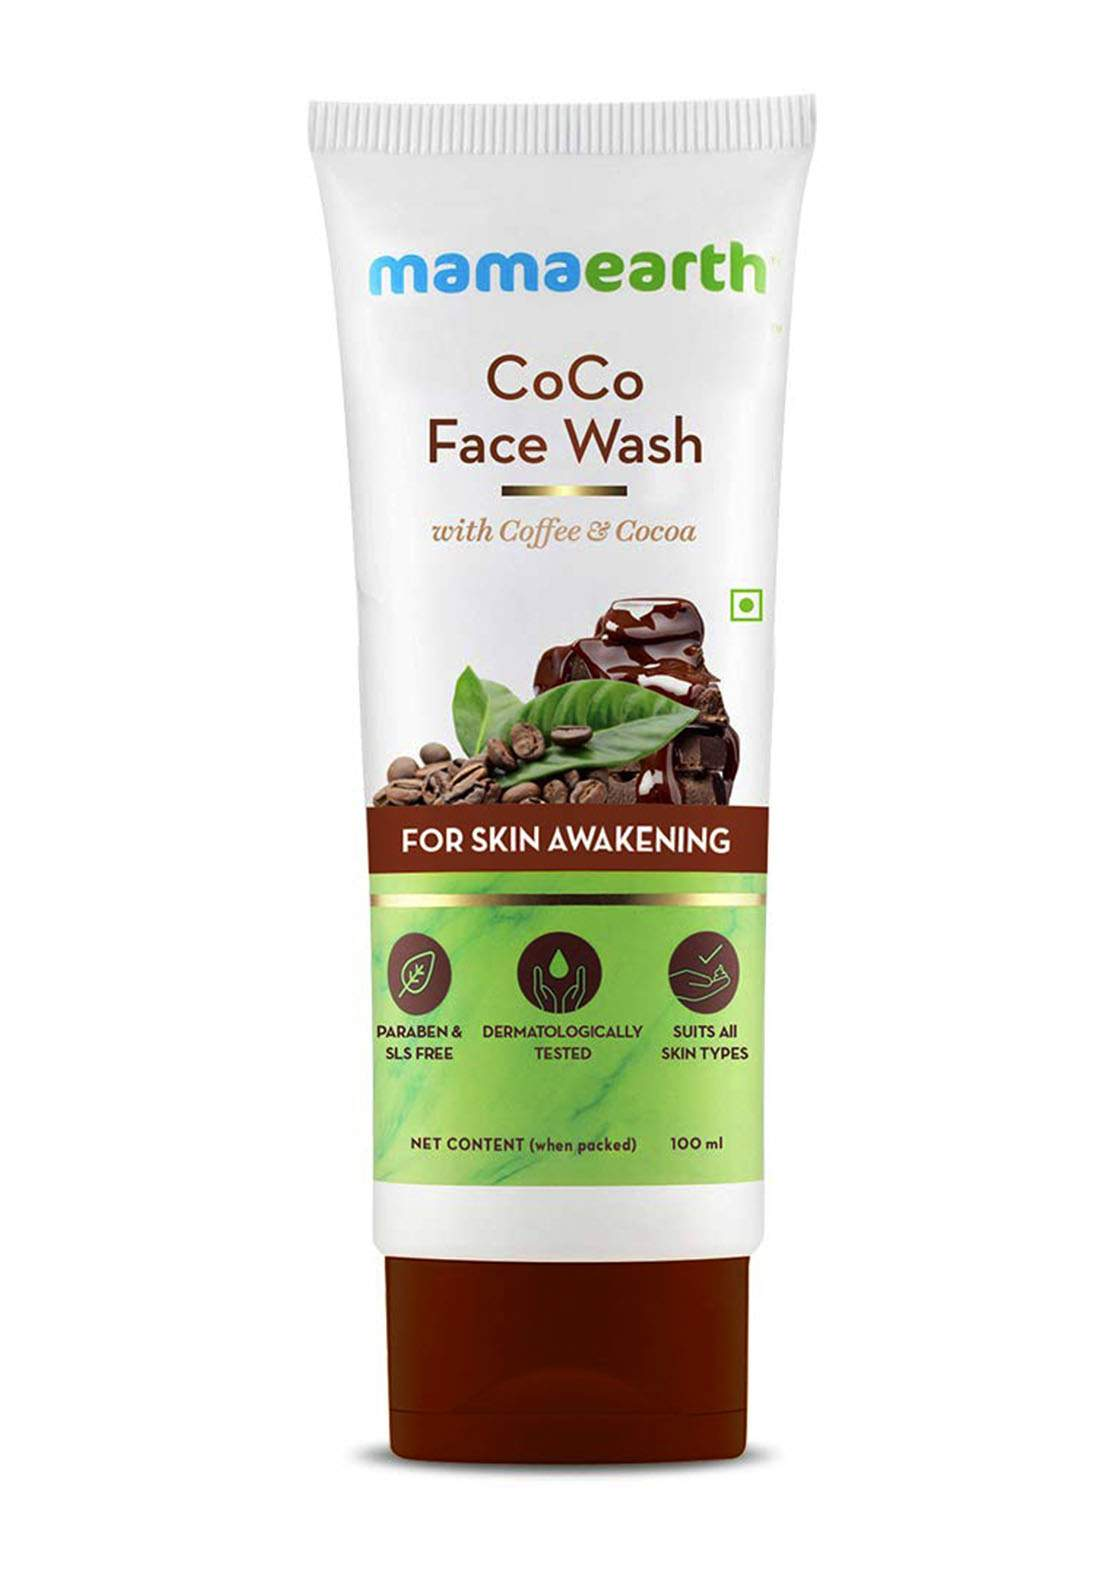 Mamaearth Coco Face Wash With Coffee And Cocoa 100ml غسول للوجه